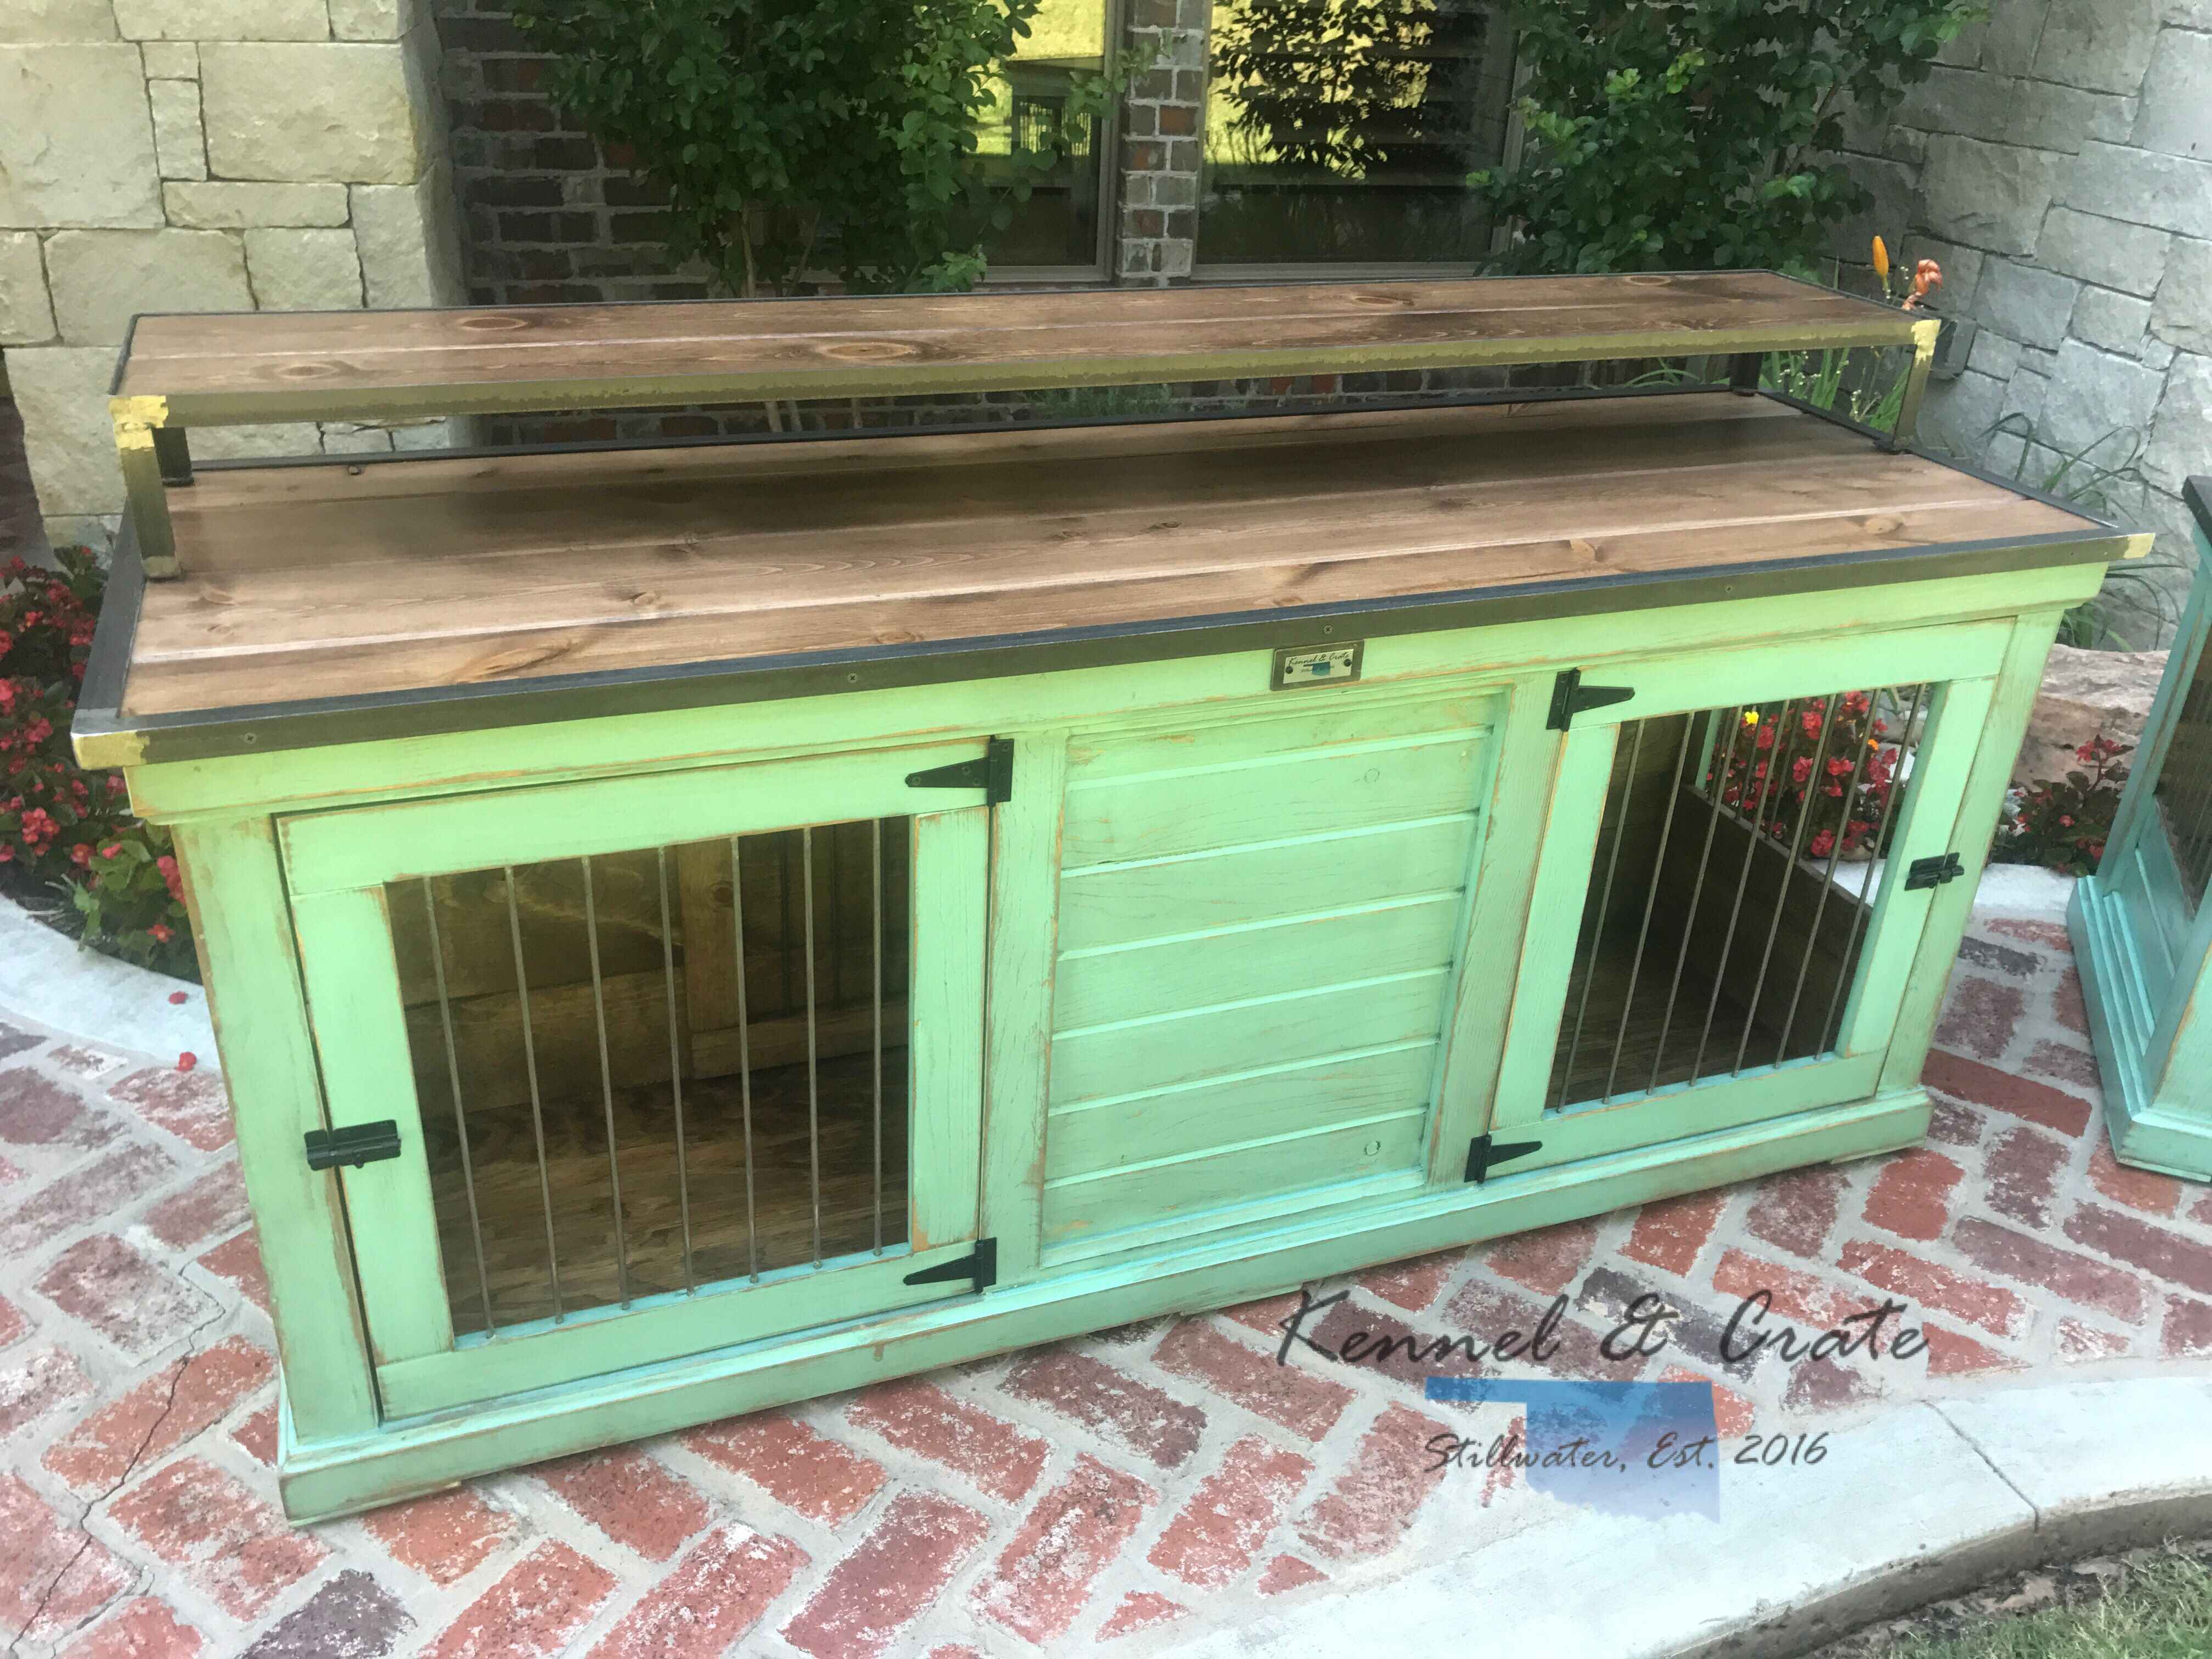 Designer Indoor Dog Kennels Replace Your Wire Dog Crate With A Beautiful Piece Of Functional Furniture Luxury Dog Kennels Indoor Dog Kennel Wire Dog Crates